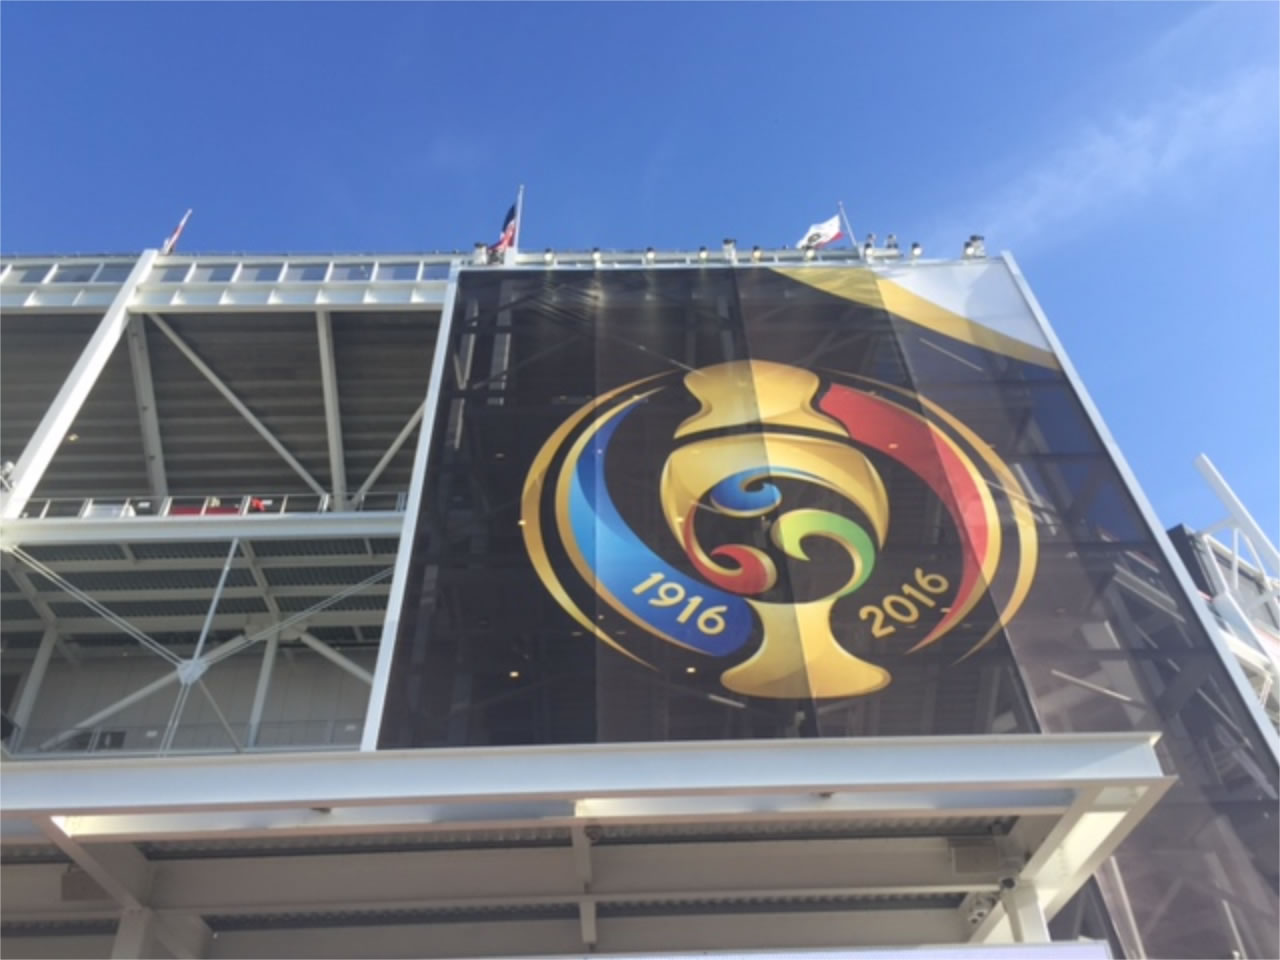 <div class='meta'><div class='origin-logo' data-origin='none'></div><span class='caption-text' data-credit='KGO-TV'>Levi's Stadium in Santa Clara, Calif., on Monday, June 6, 2016. We want to see your fan pride, so tag your photos #ABC7Now and we may feature them here or on TV.</span></div>